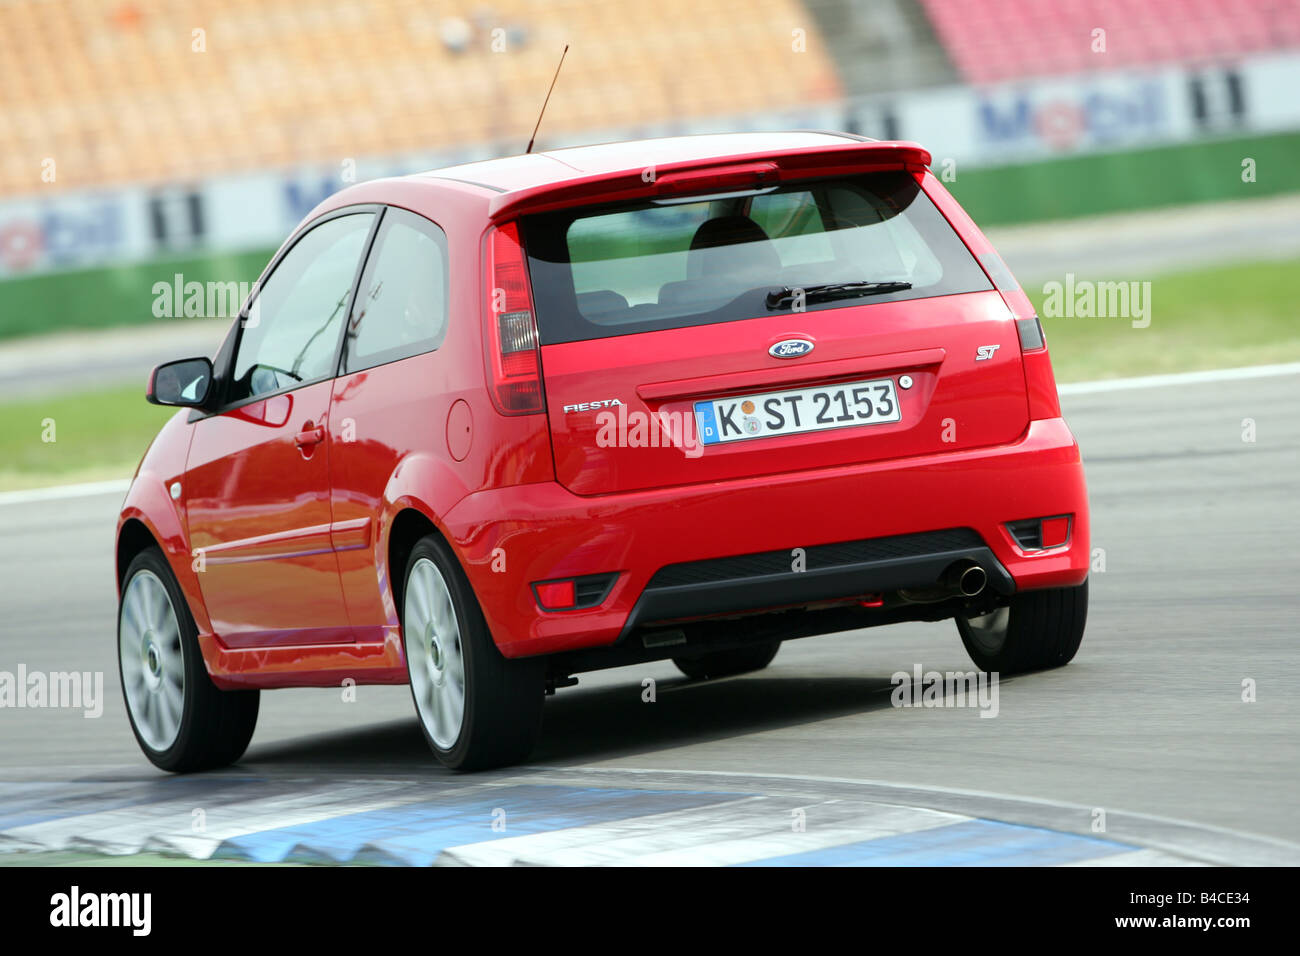 Car ford fiesta st small approx red model year 2005